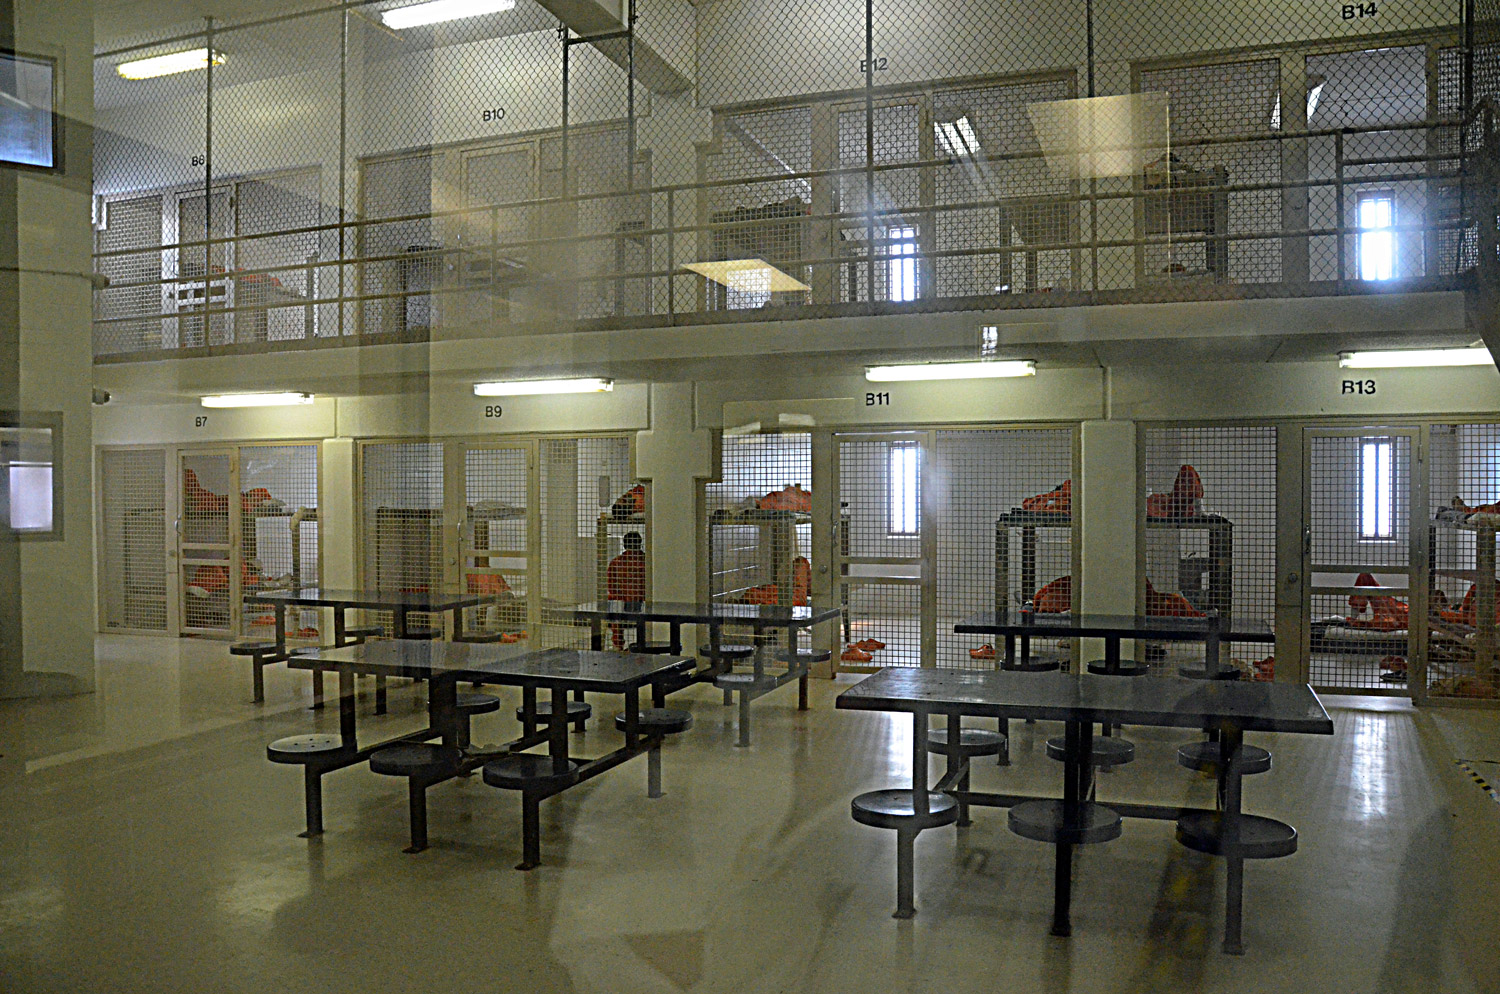 Not much coddling here. Felony jail inmates on lock-down, because they